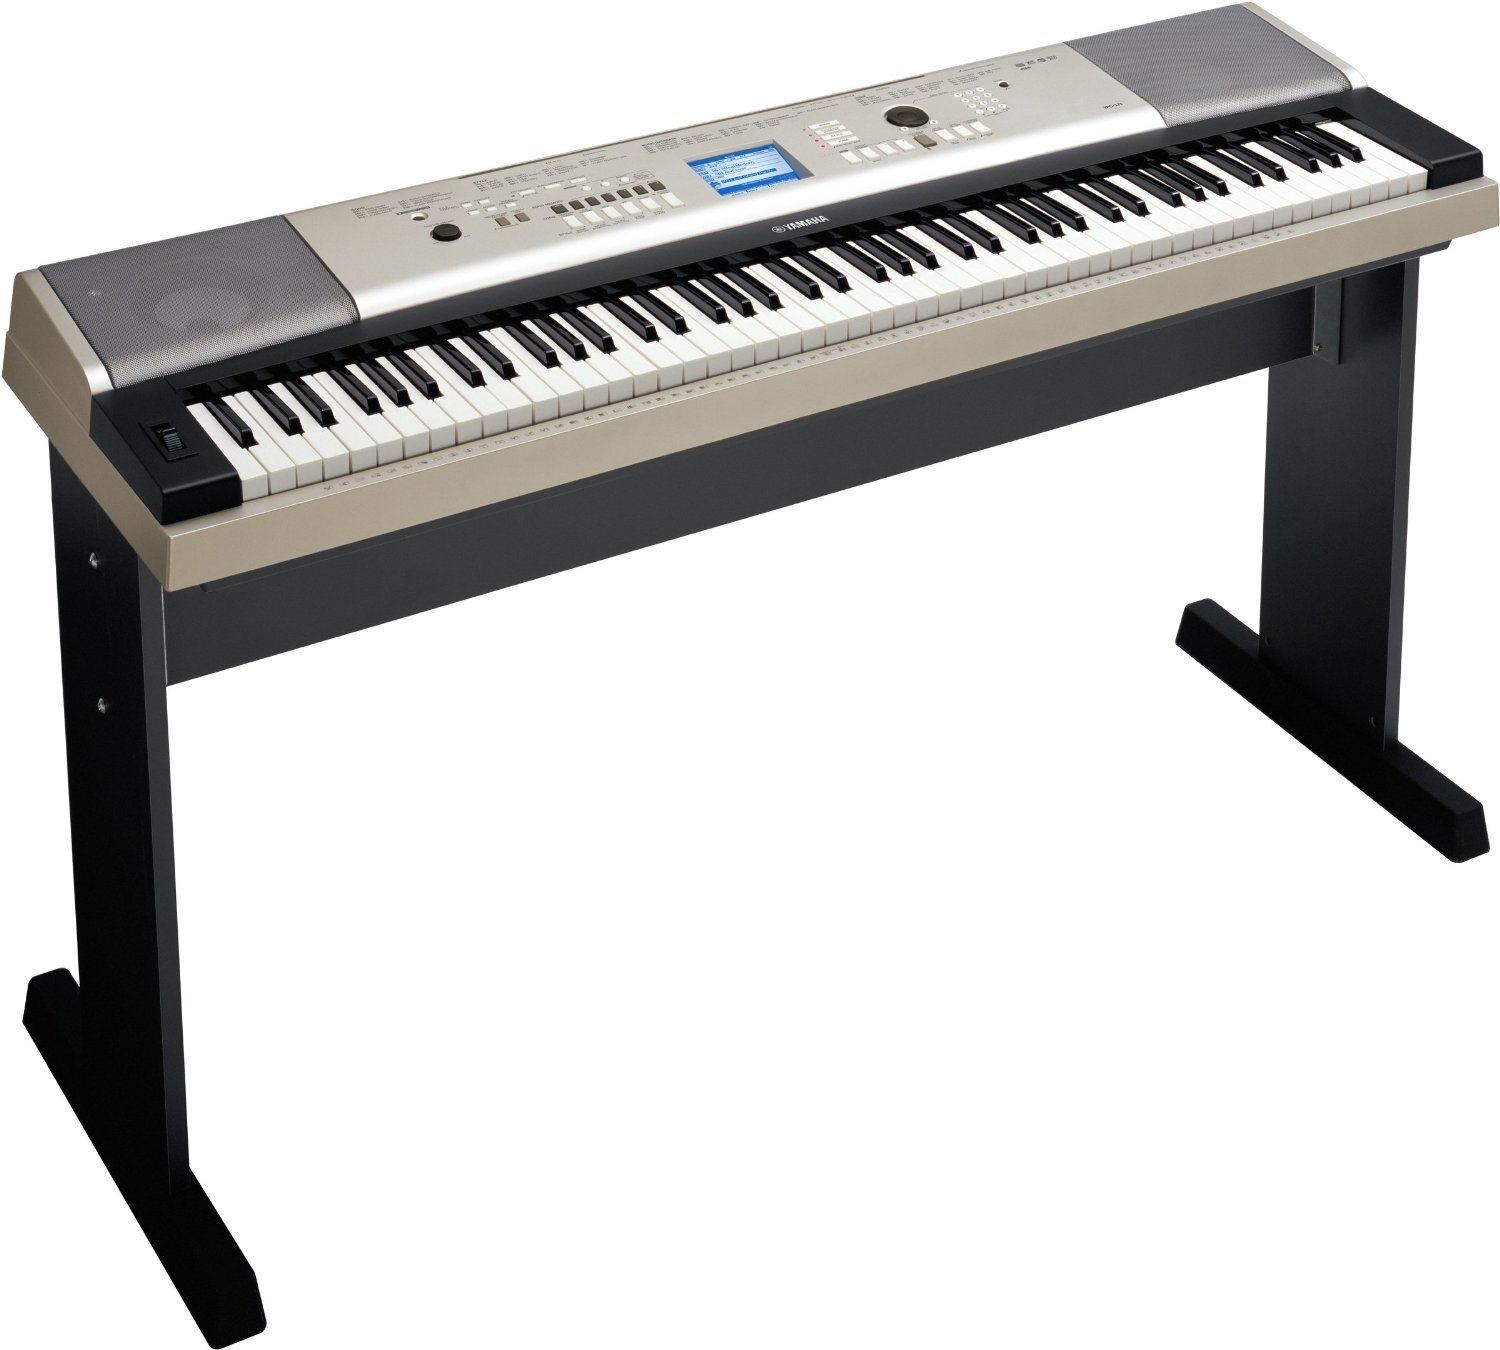 Yamaha Ypg 535 Digital Piano Review Best Digital Piano